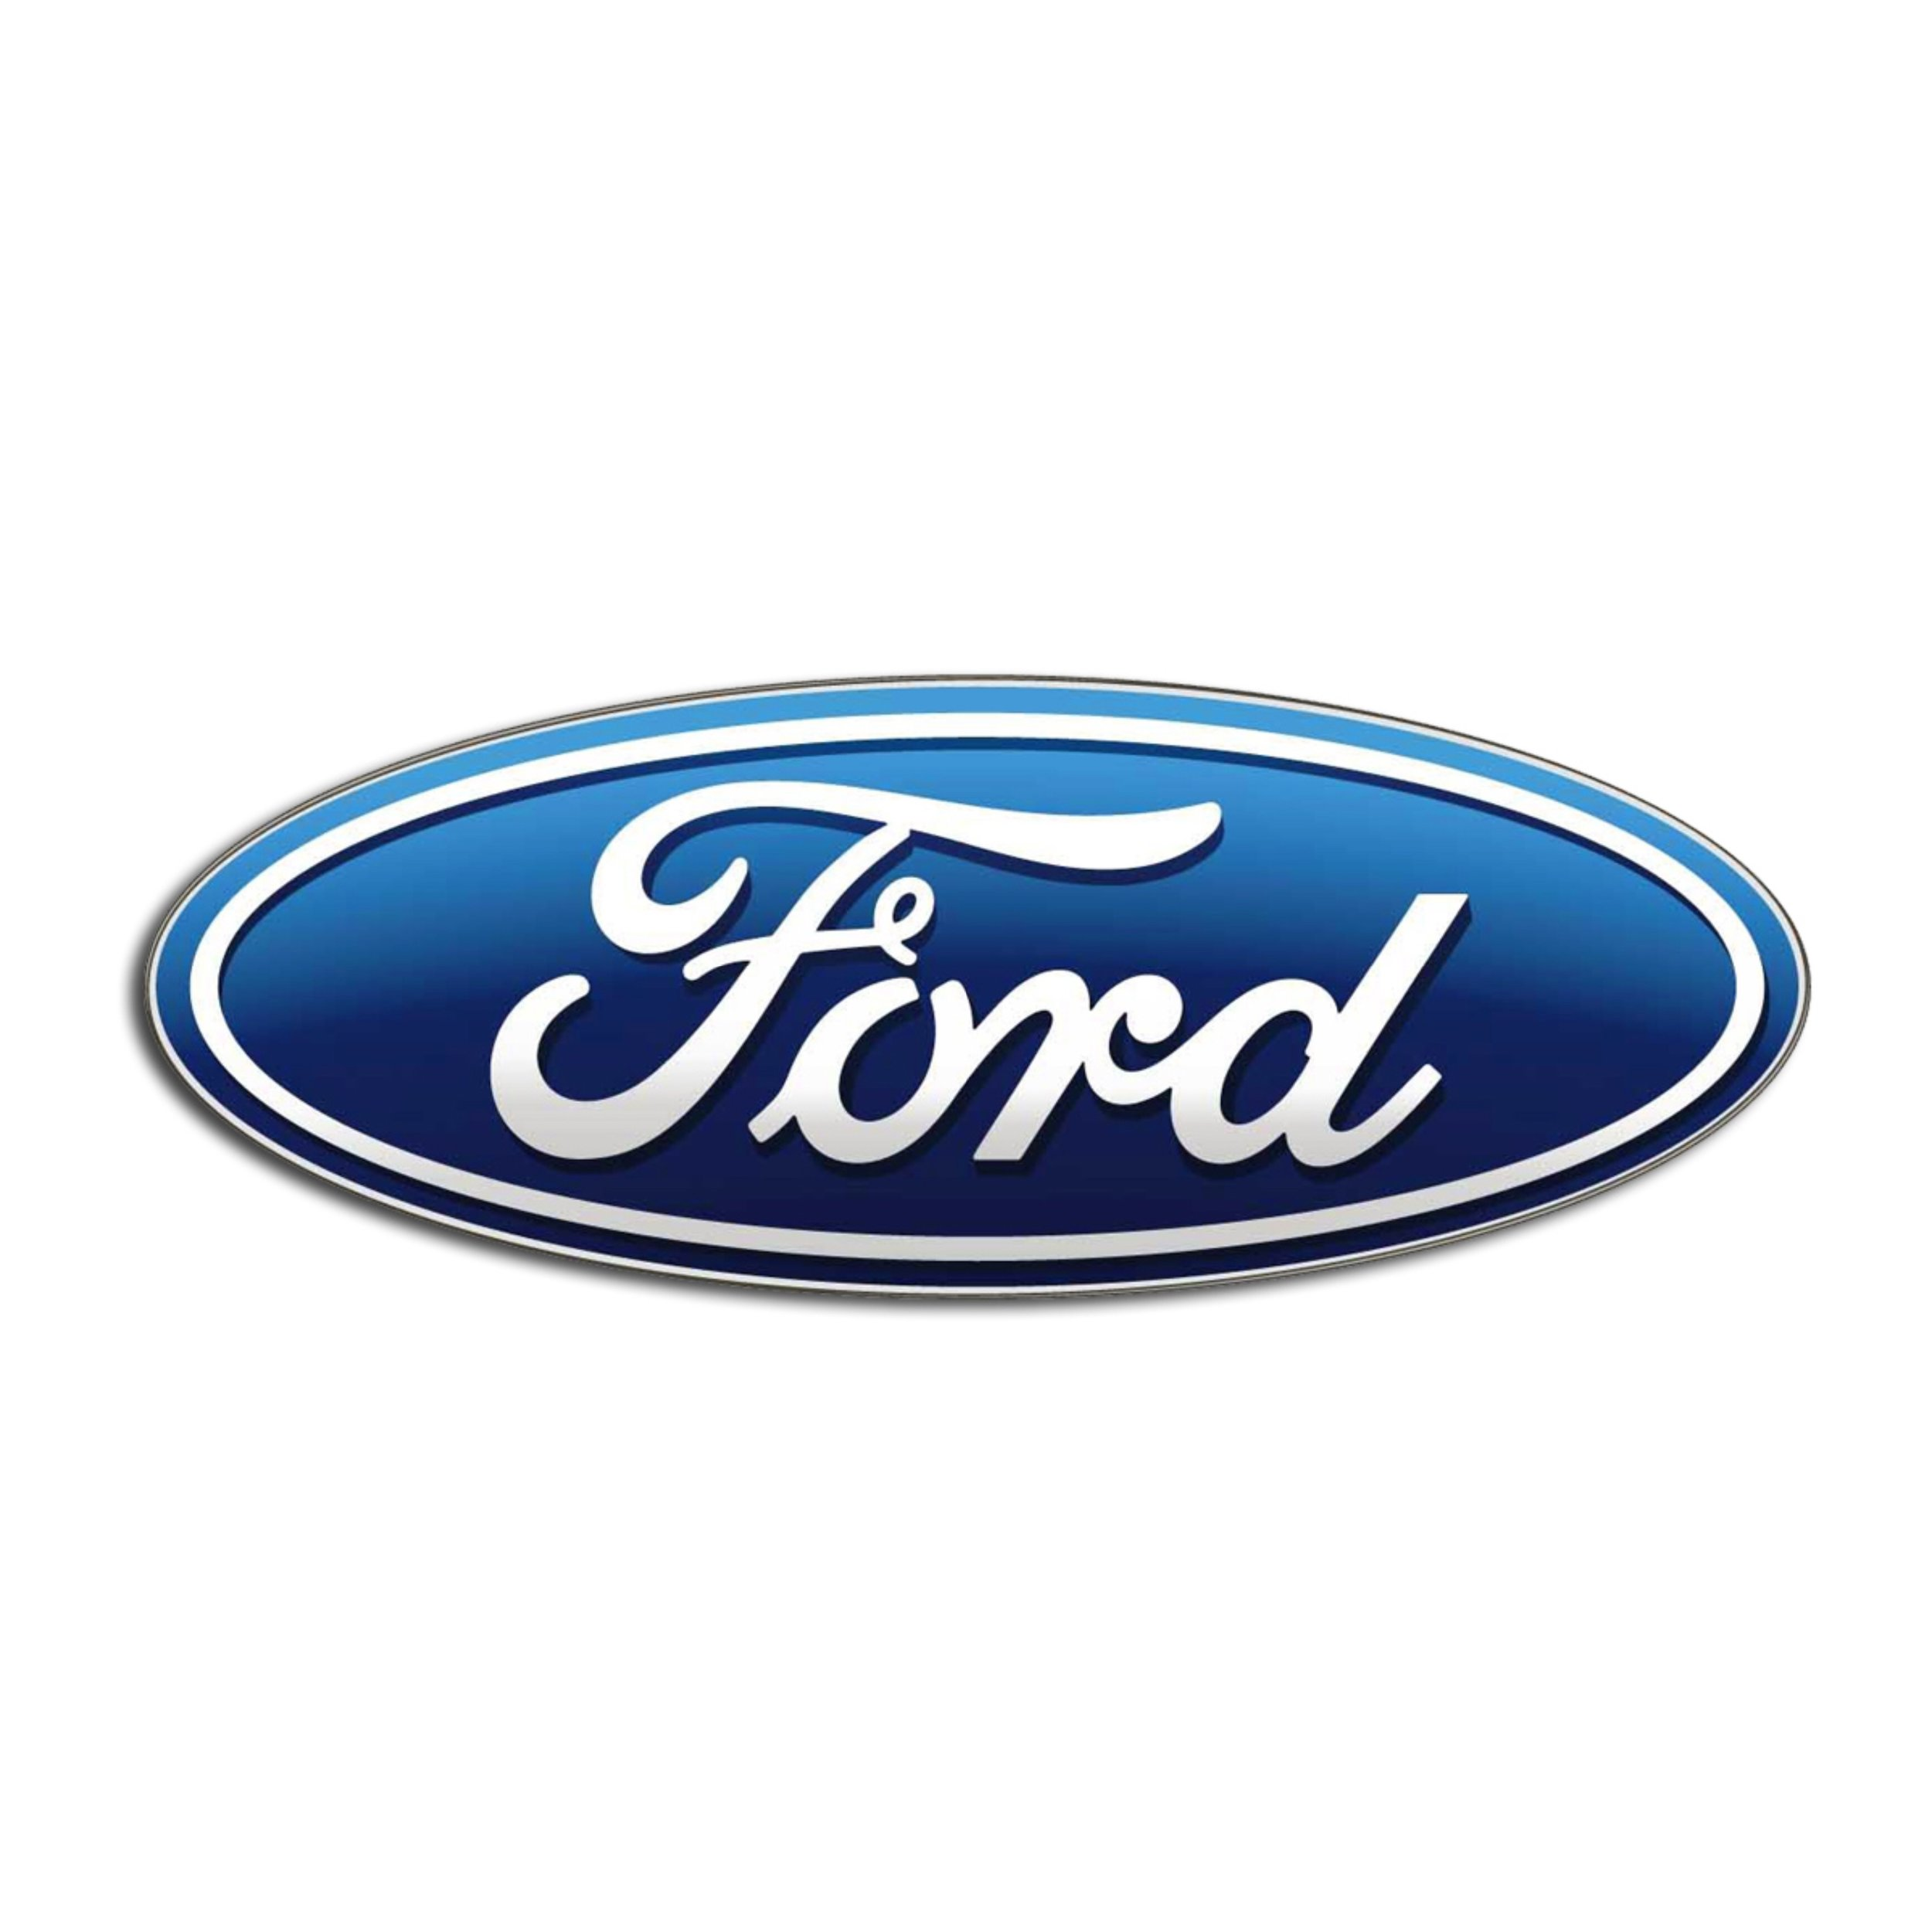 Ford - Anzahl Angebote: 3